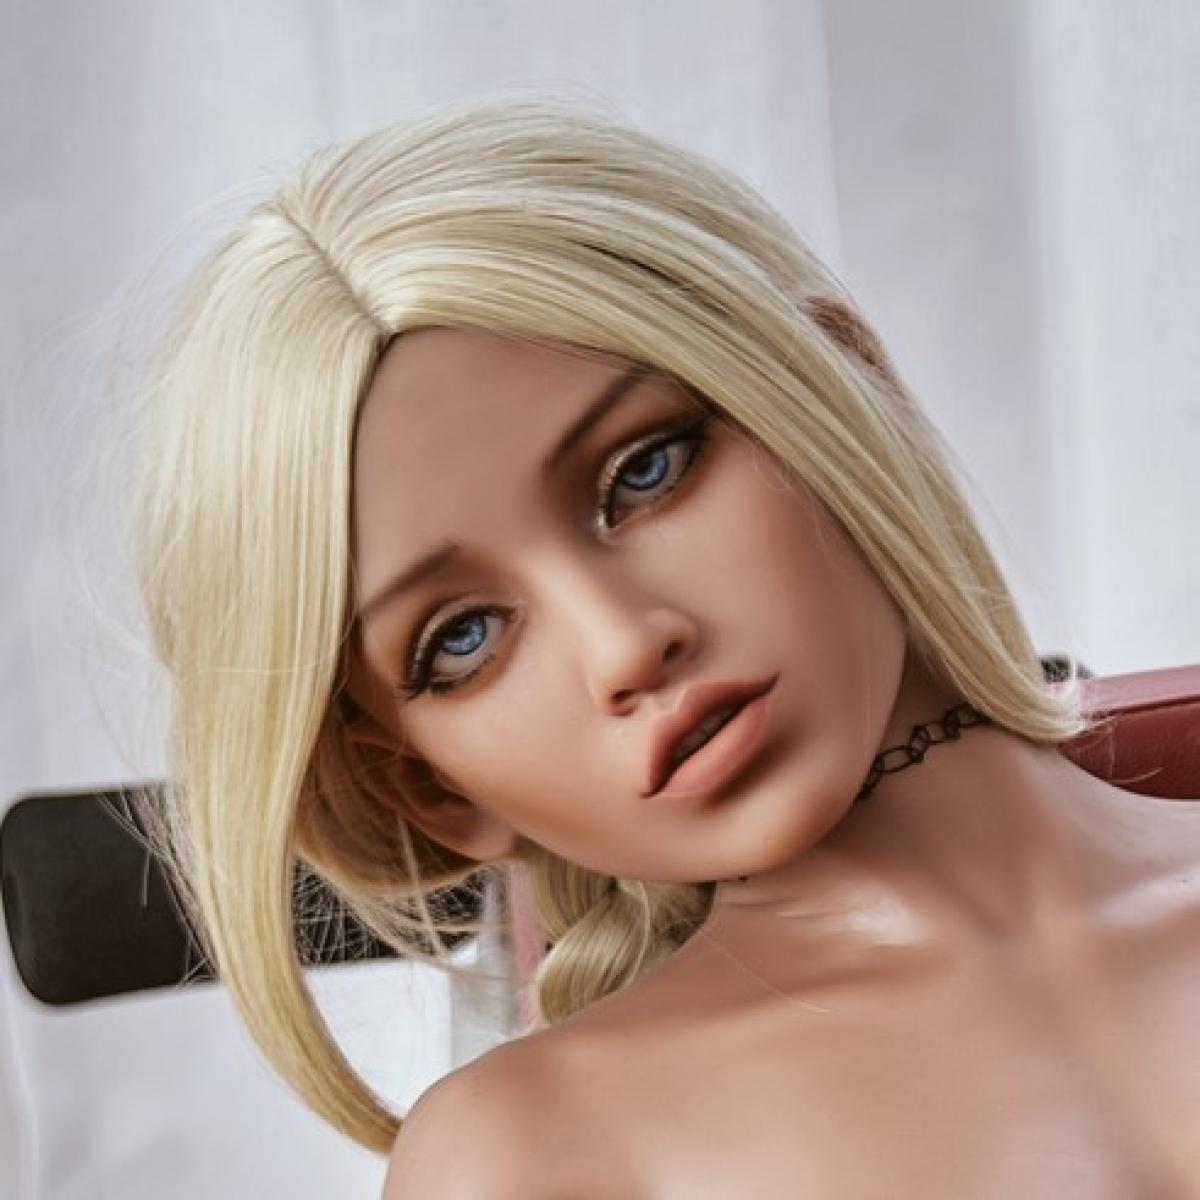 Neodoll Racy Victoria - Sex Doll Head - M16 Compatible - Brown